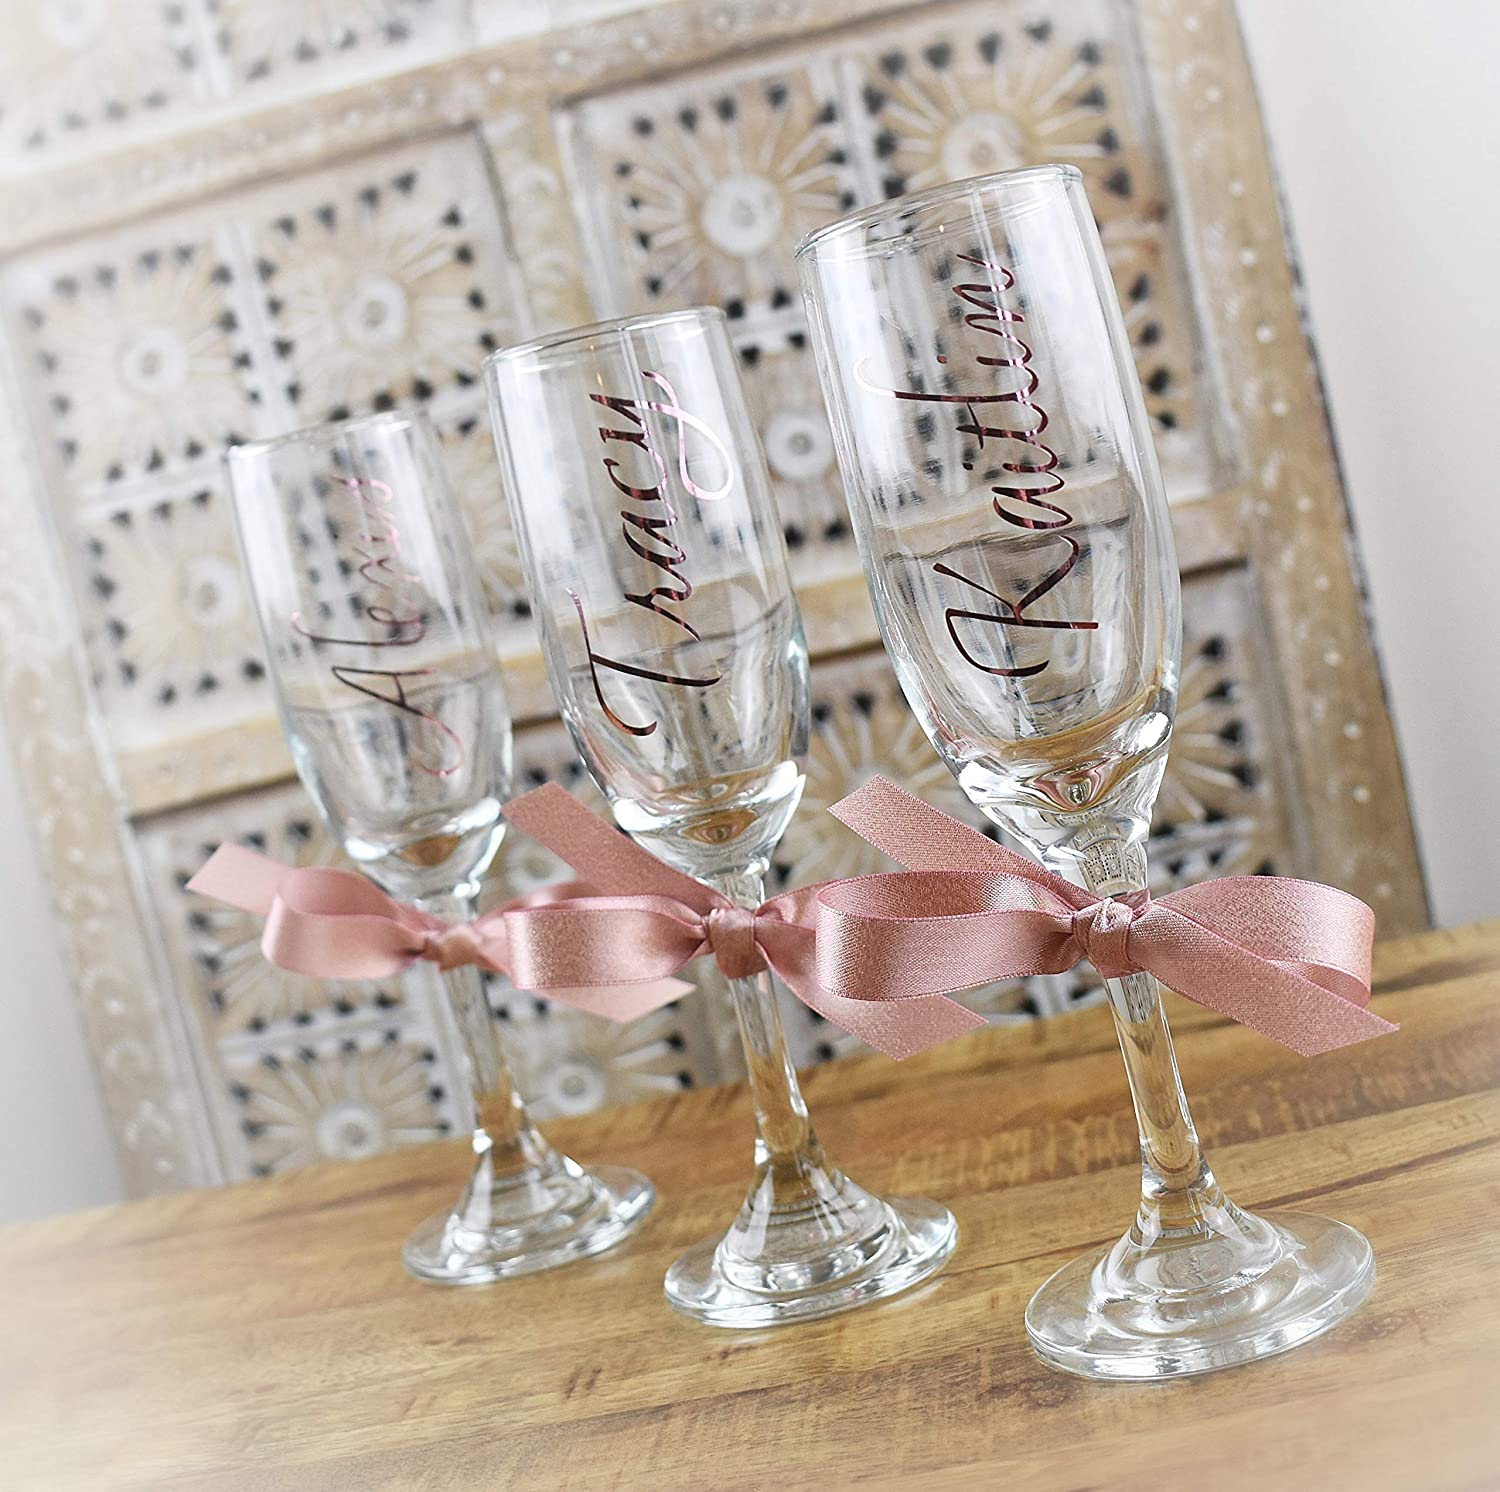 Polymer Clay Tutorial Engagement Gift Bride Gift Ideas Champagne Flutes DIY Wedding Gift Free Shipping DIY Bridal Party Wine Glass